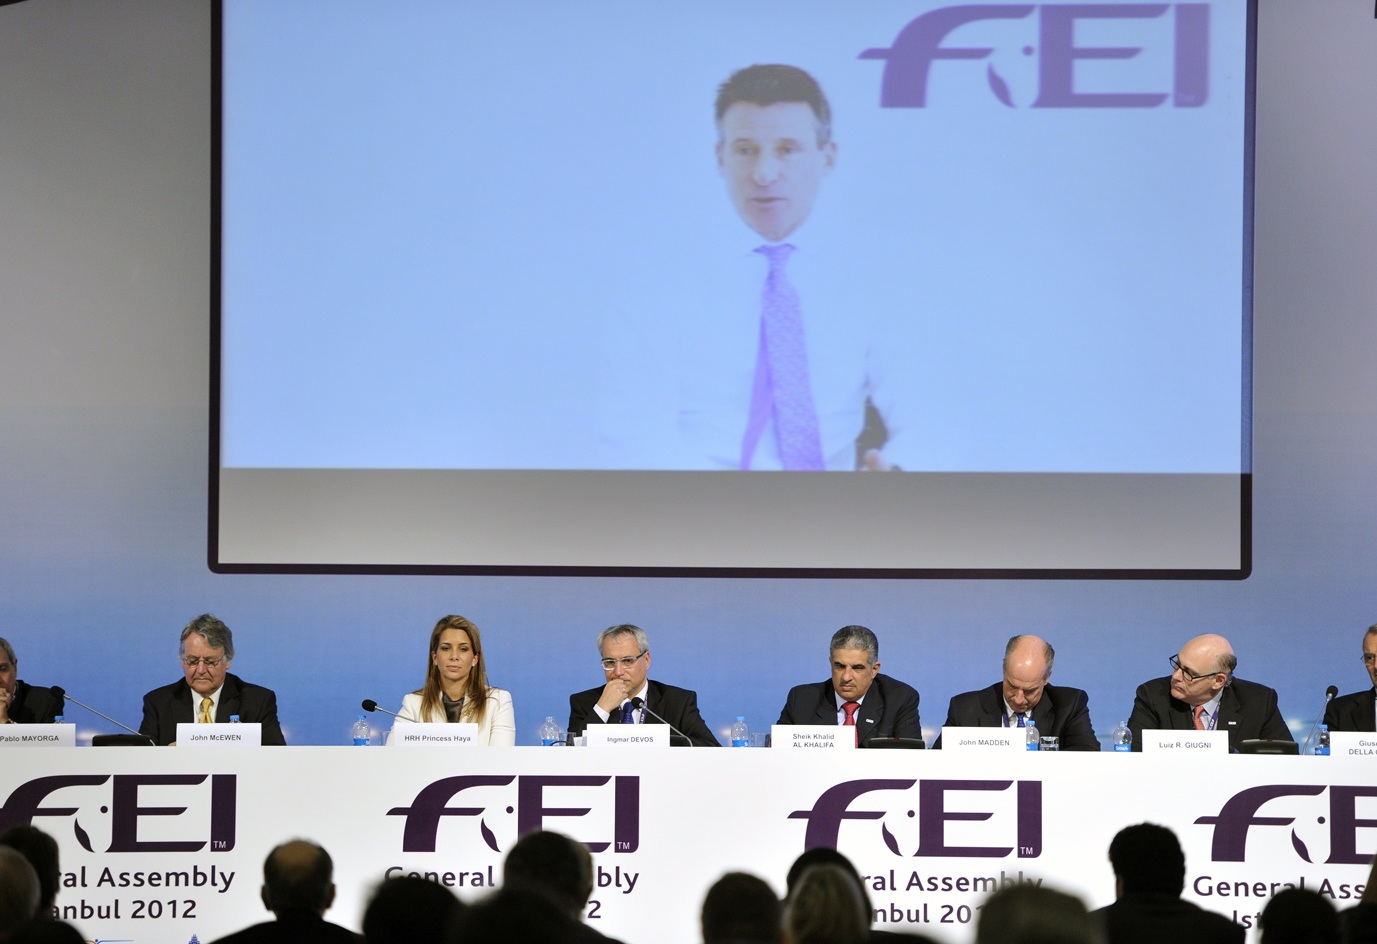 Lord Coe addresses FEI General Assembly